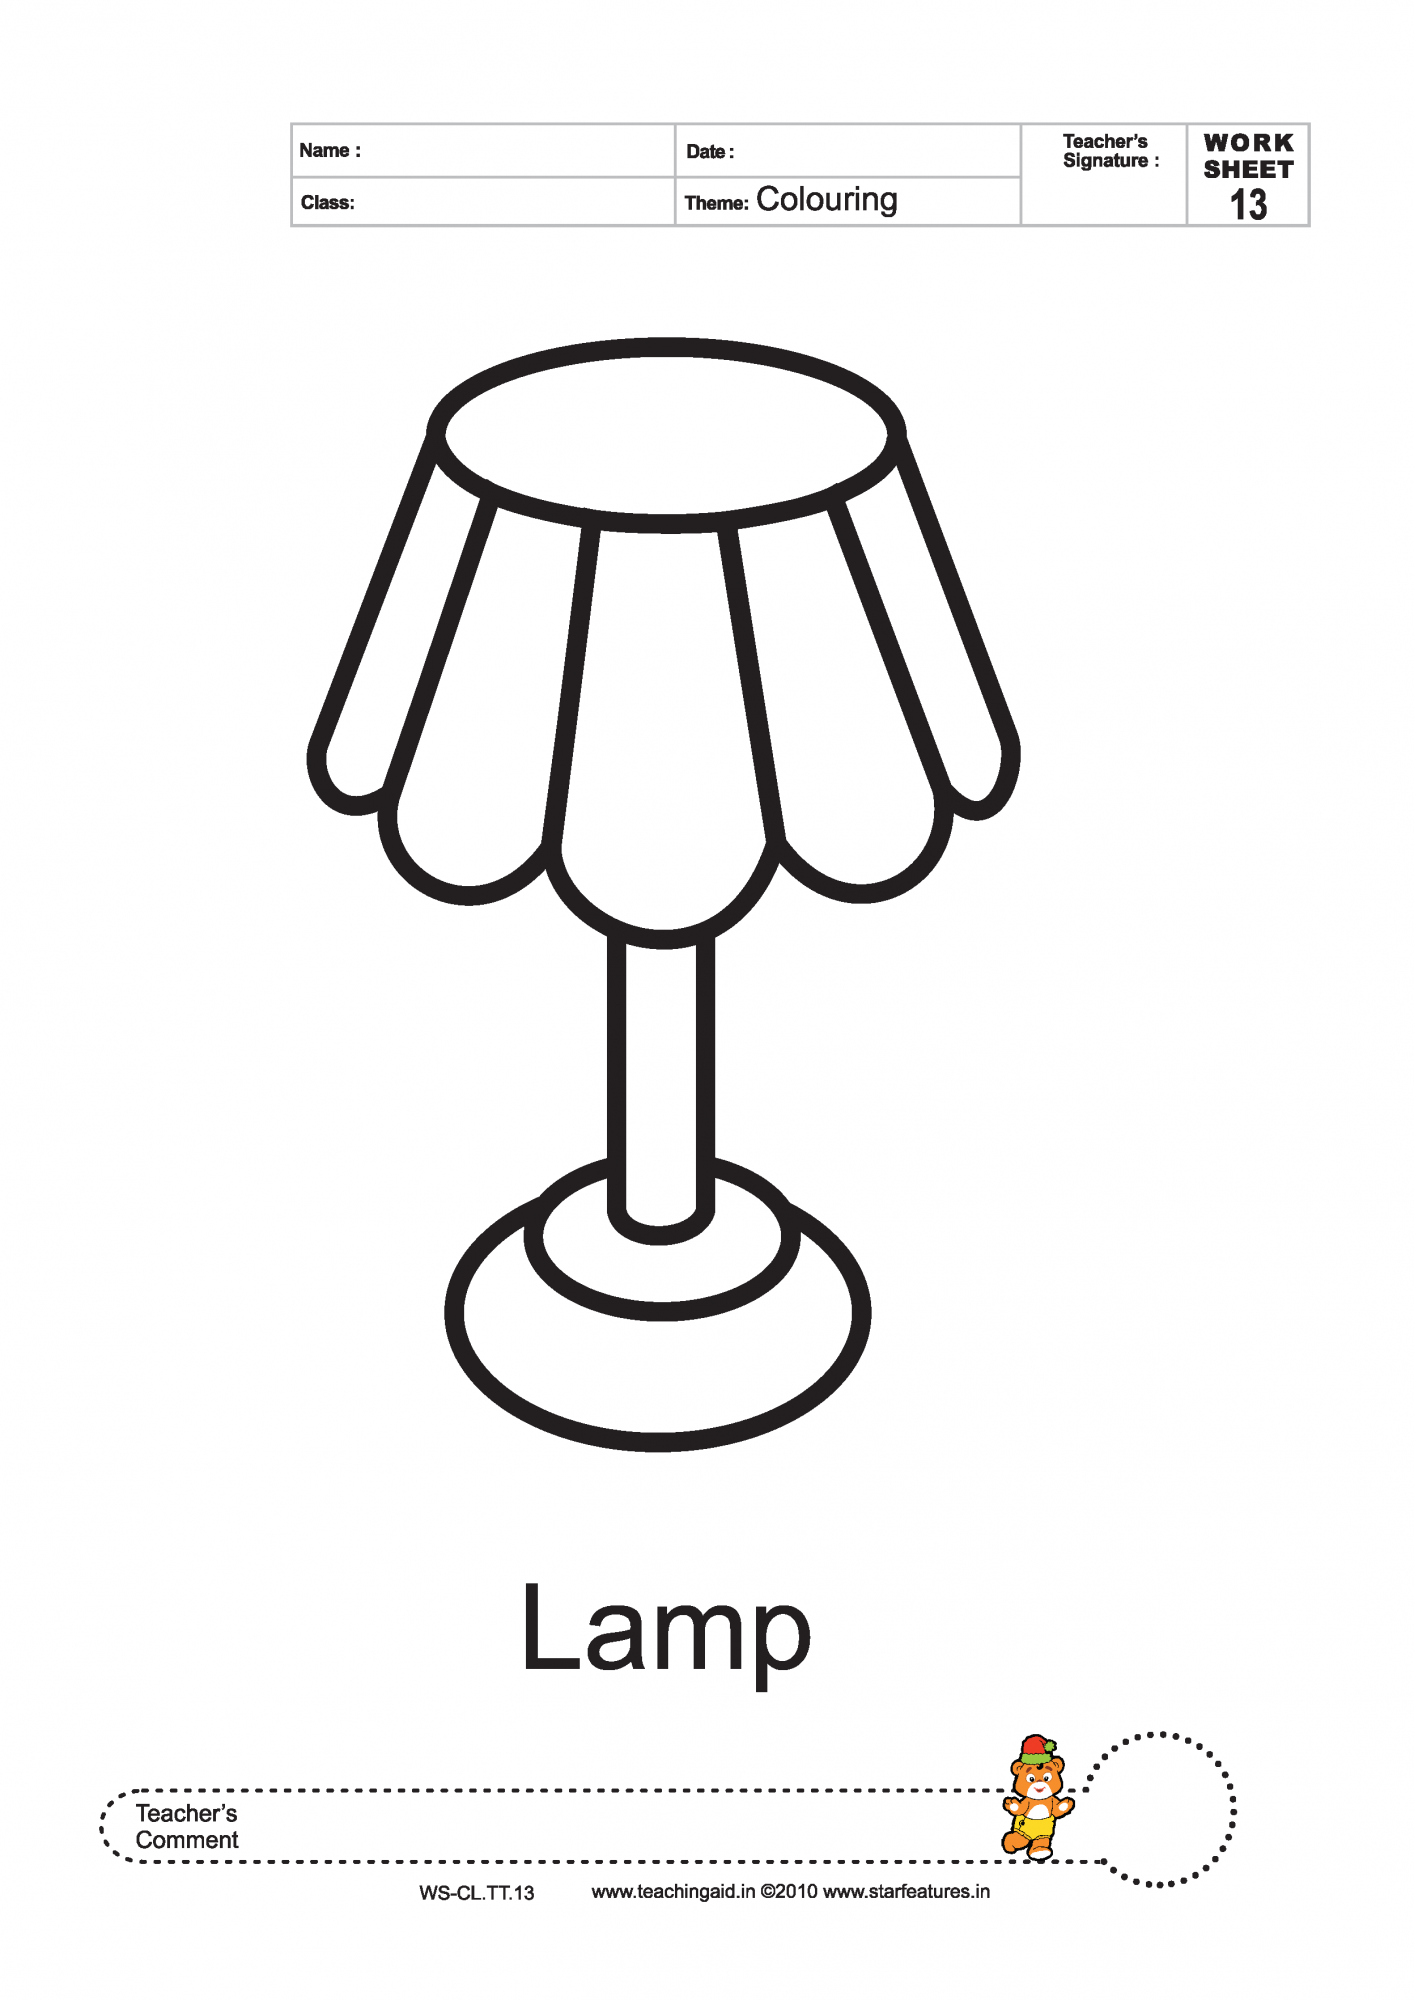 lamp coloring page pictures to pin on pinterest